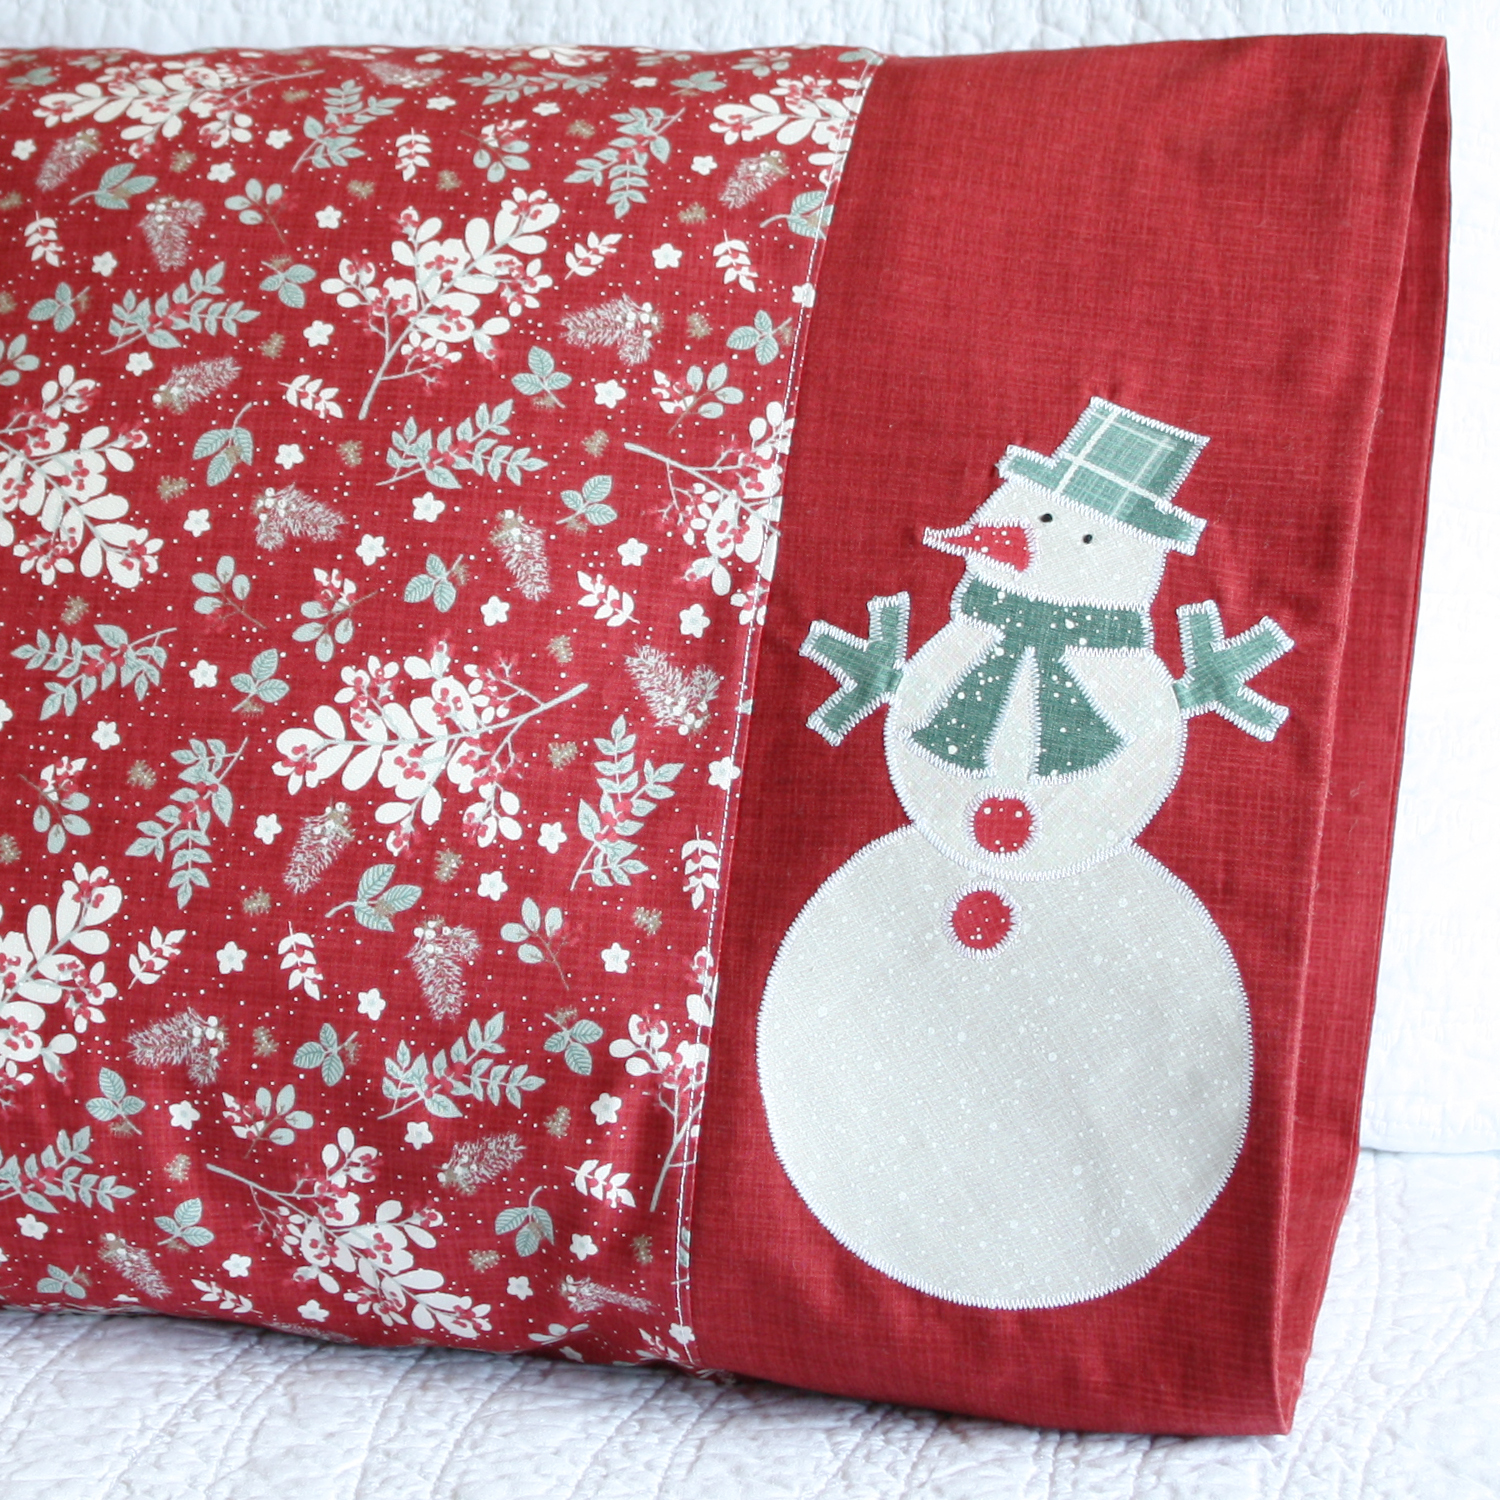 Snowman Applique Pillowcase in Moda Fabrics